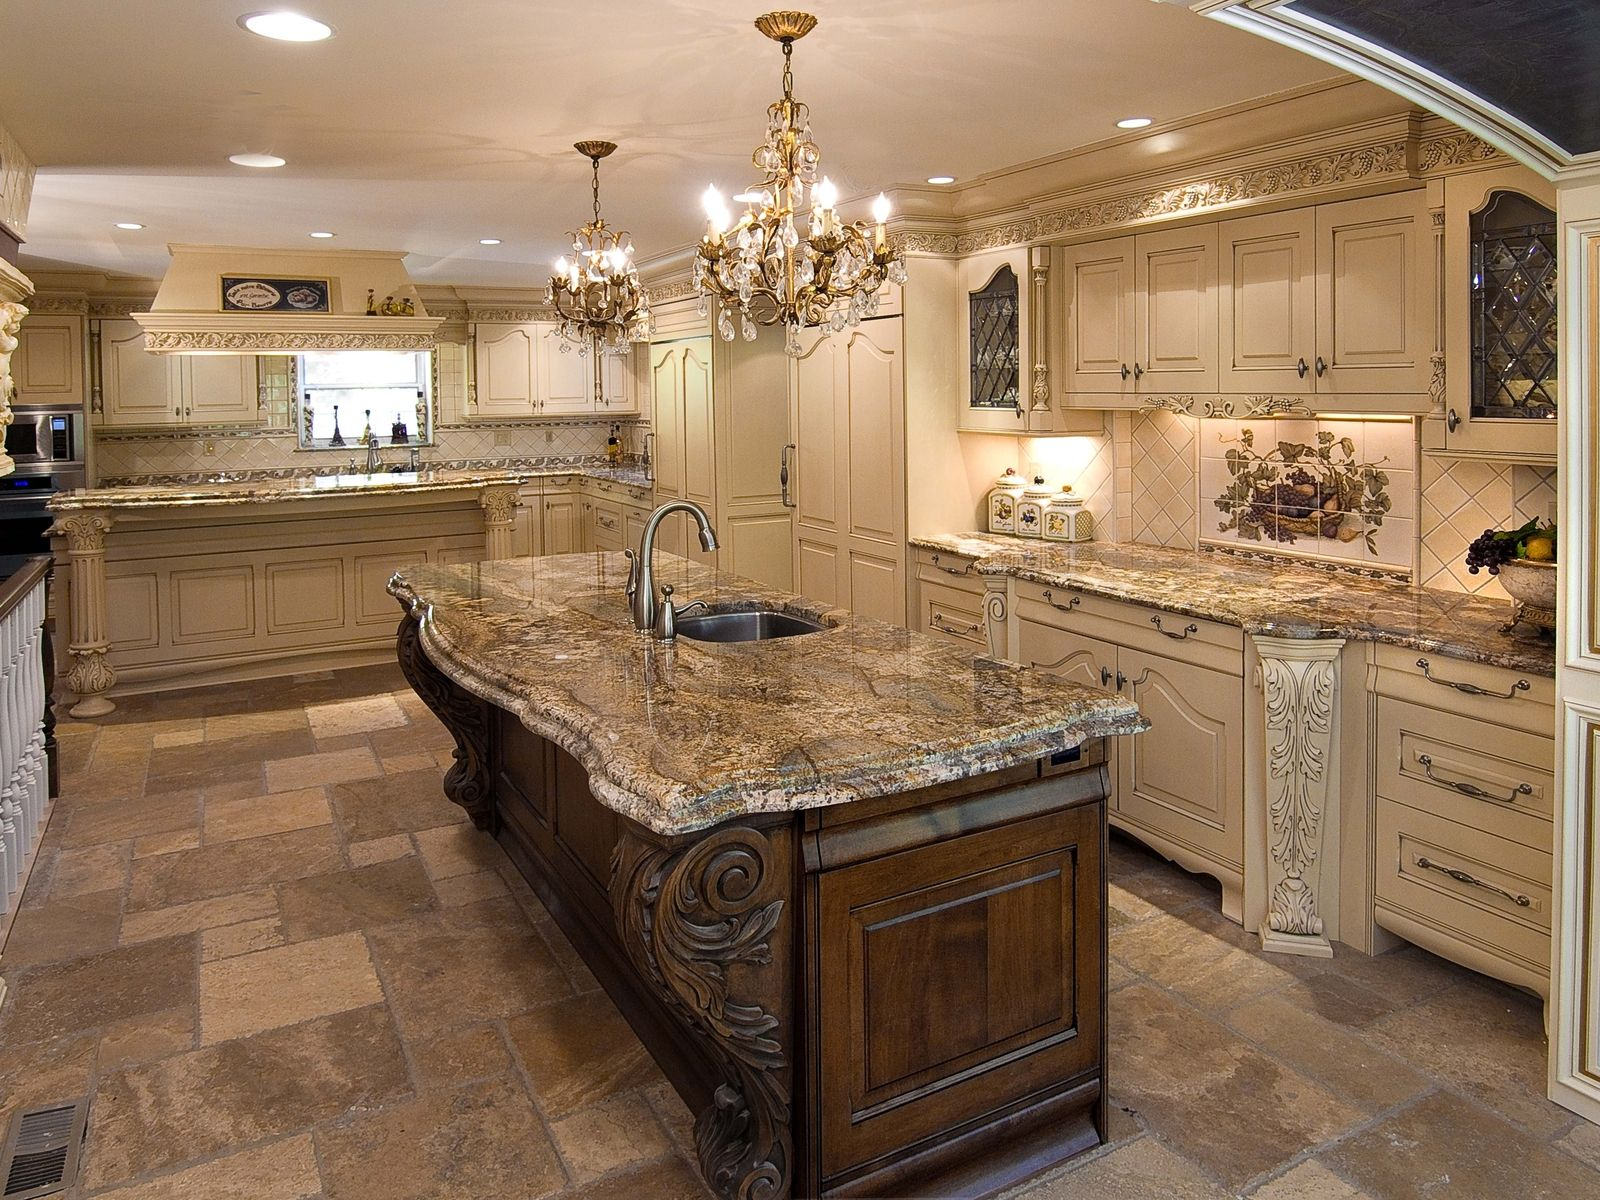 ornate kitchen cabinets custom made ornate kitchen by allgyer